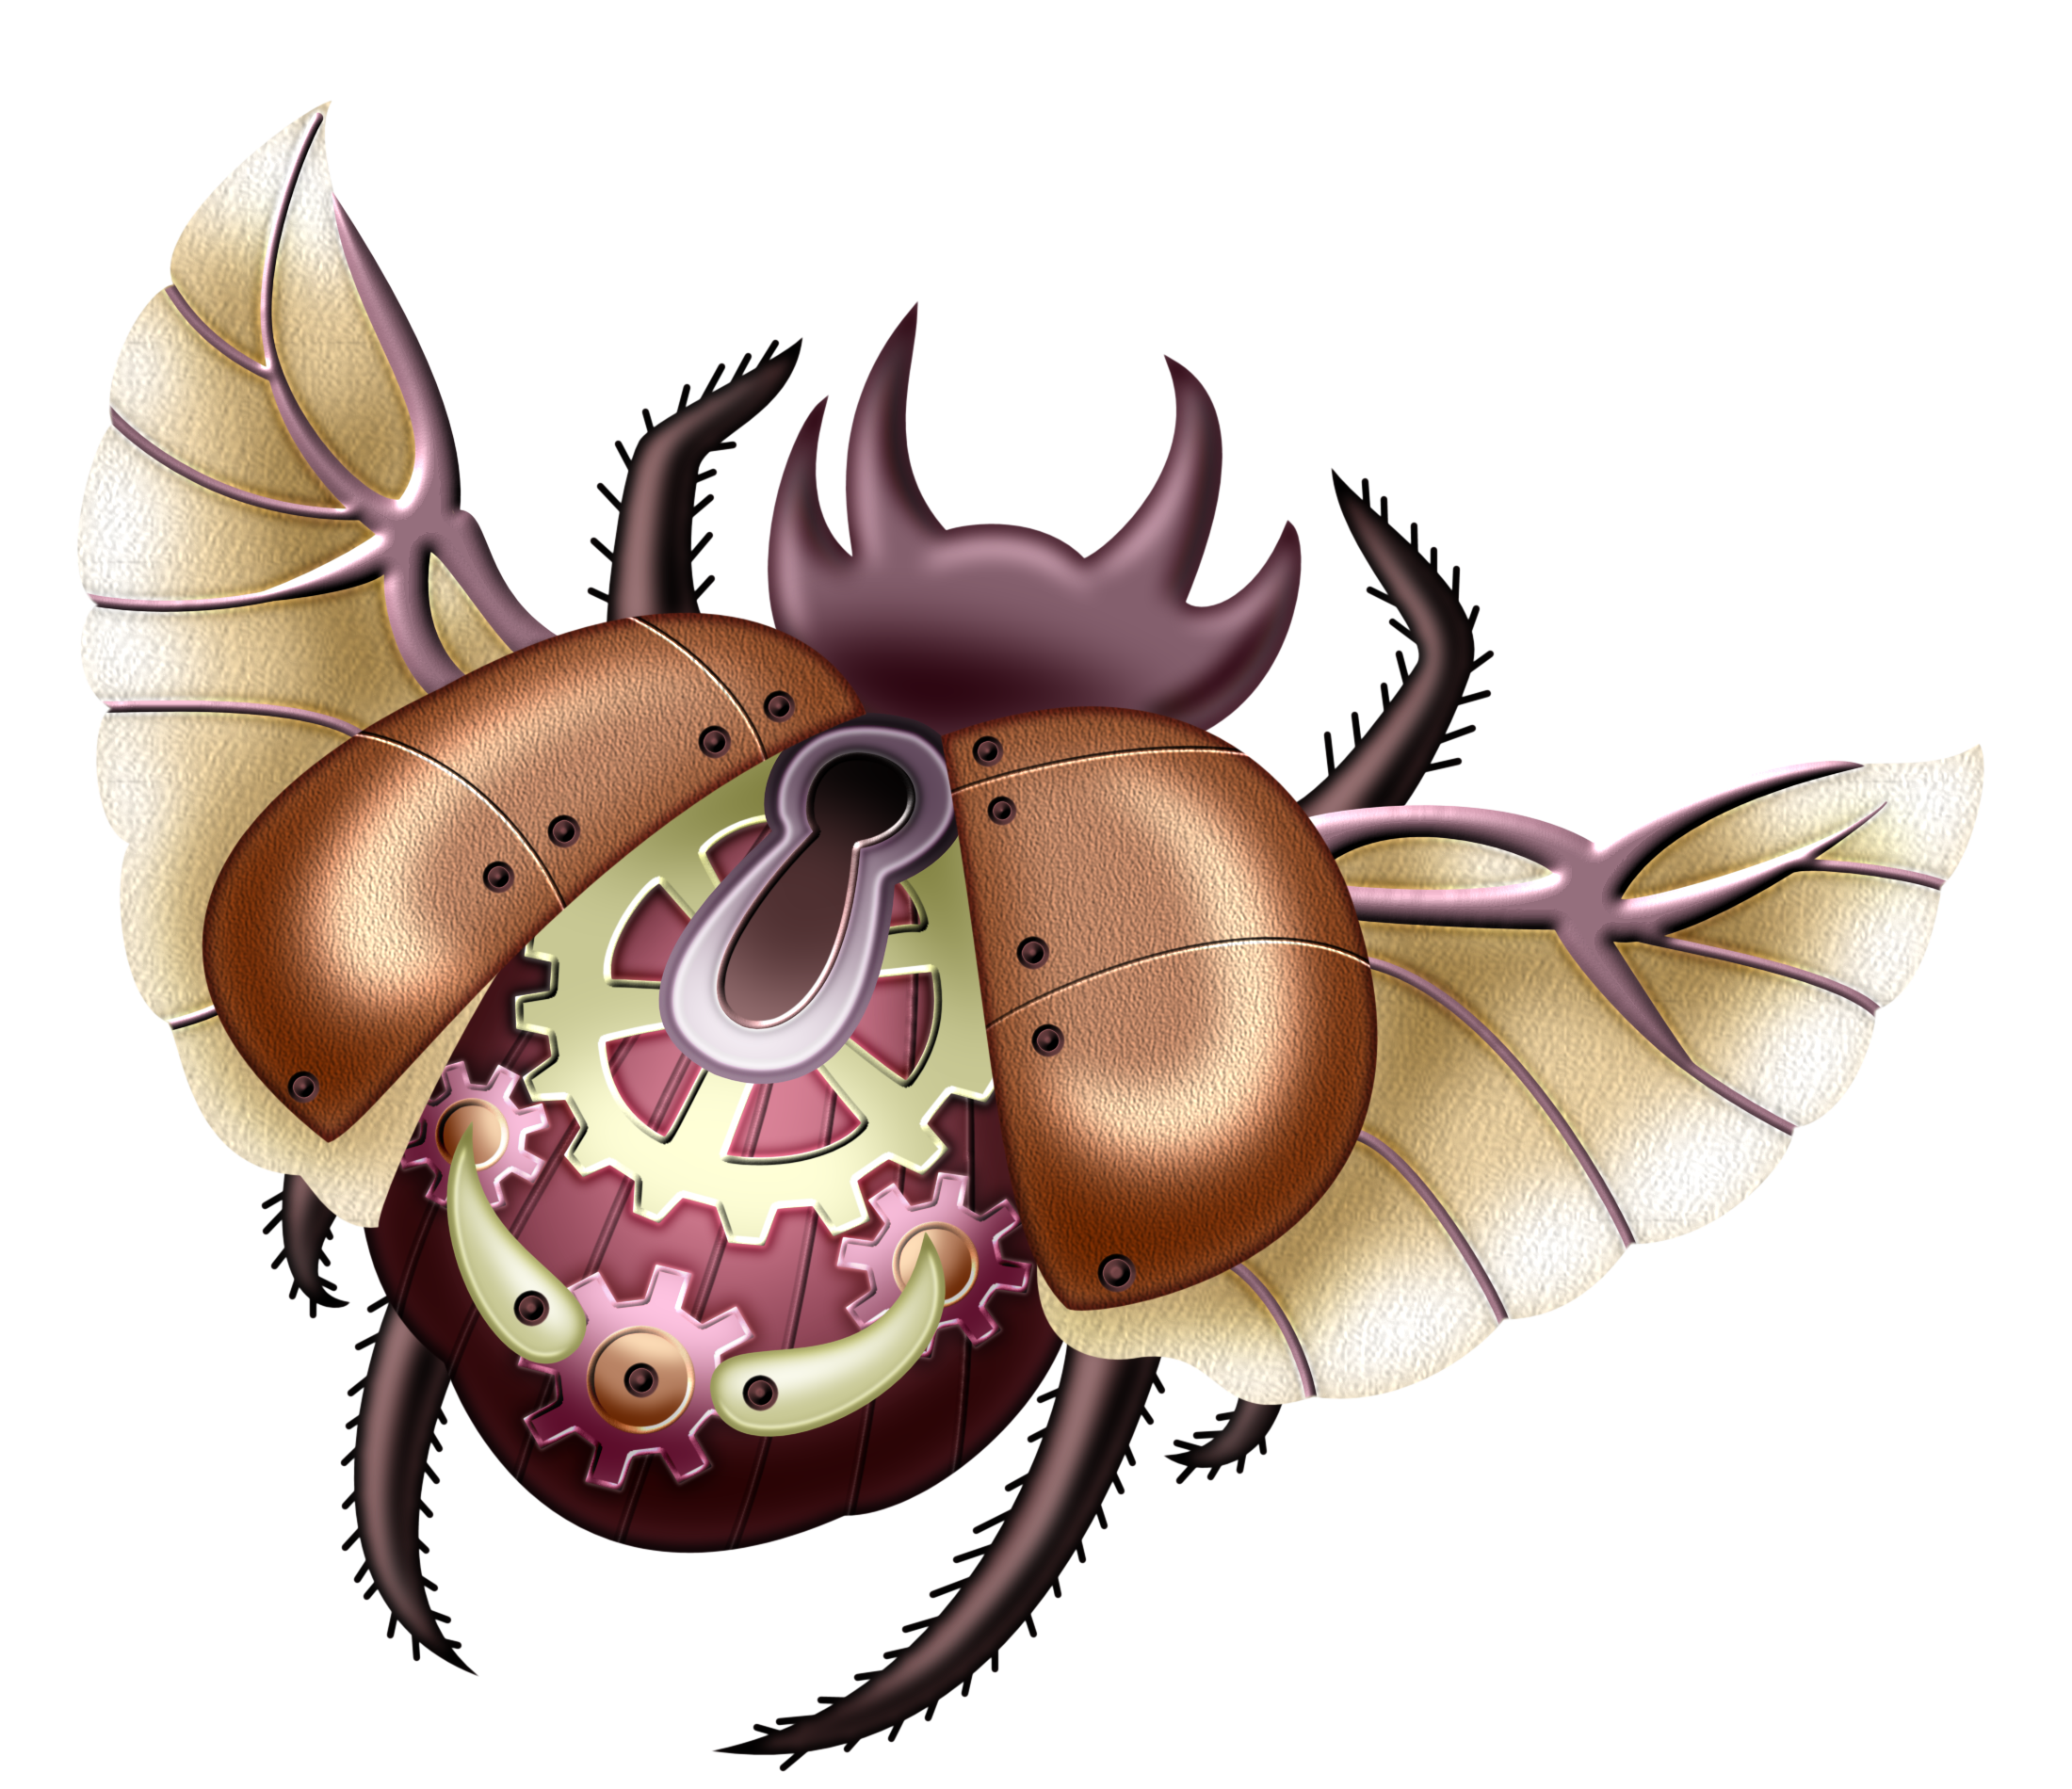 Steampunk clipart steampunk butterfly. Pin by sandy coffman